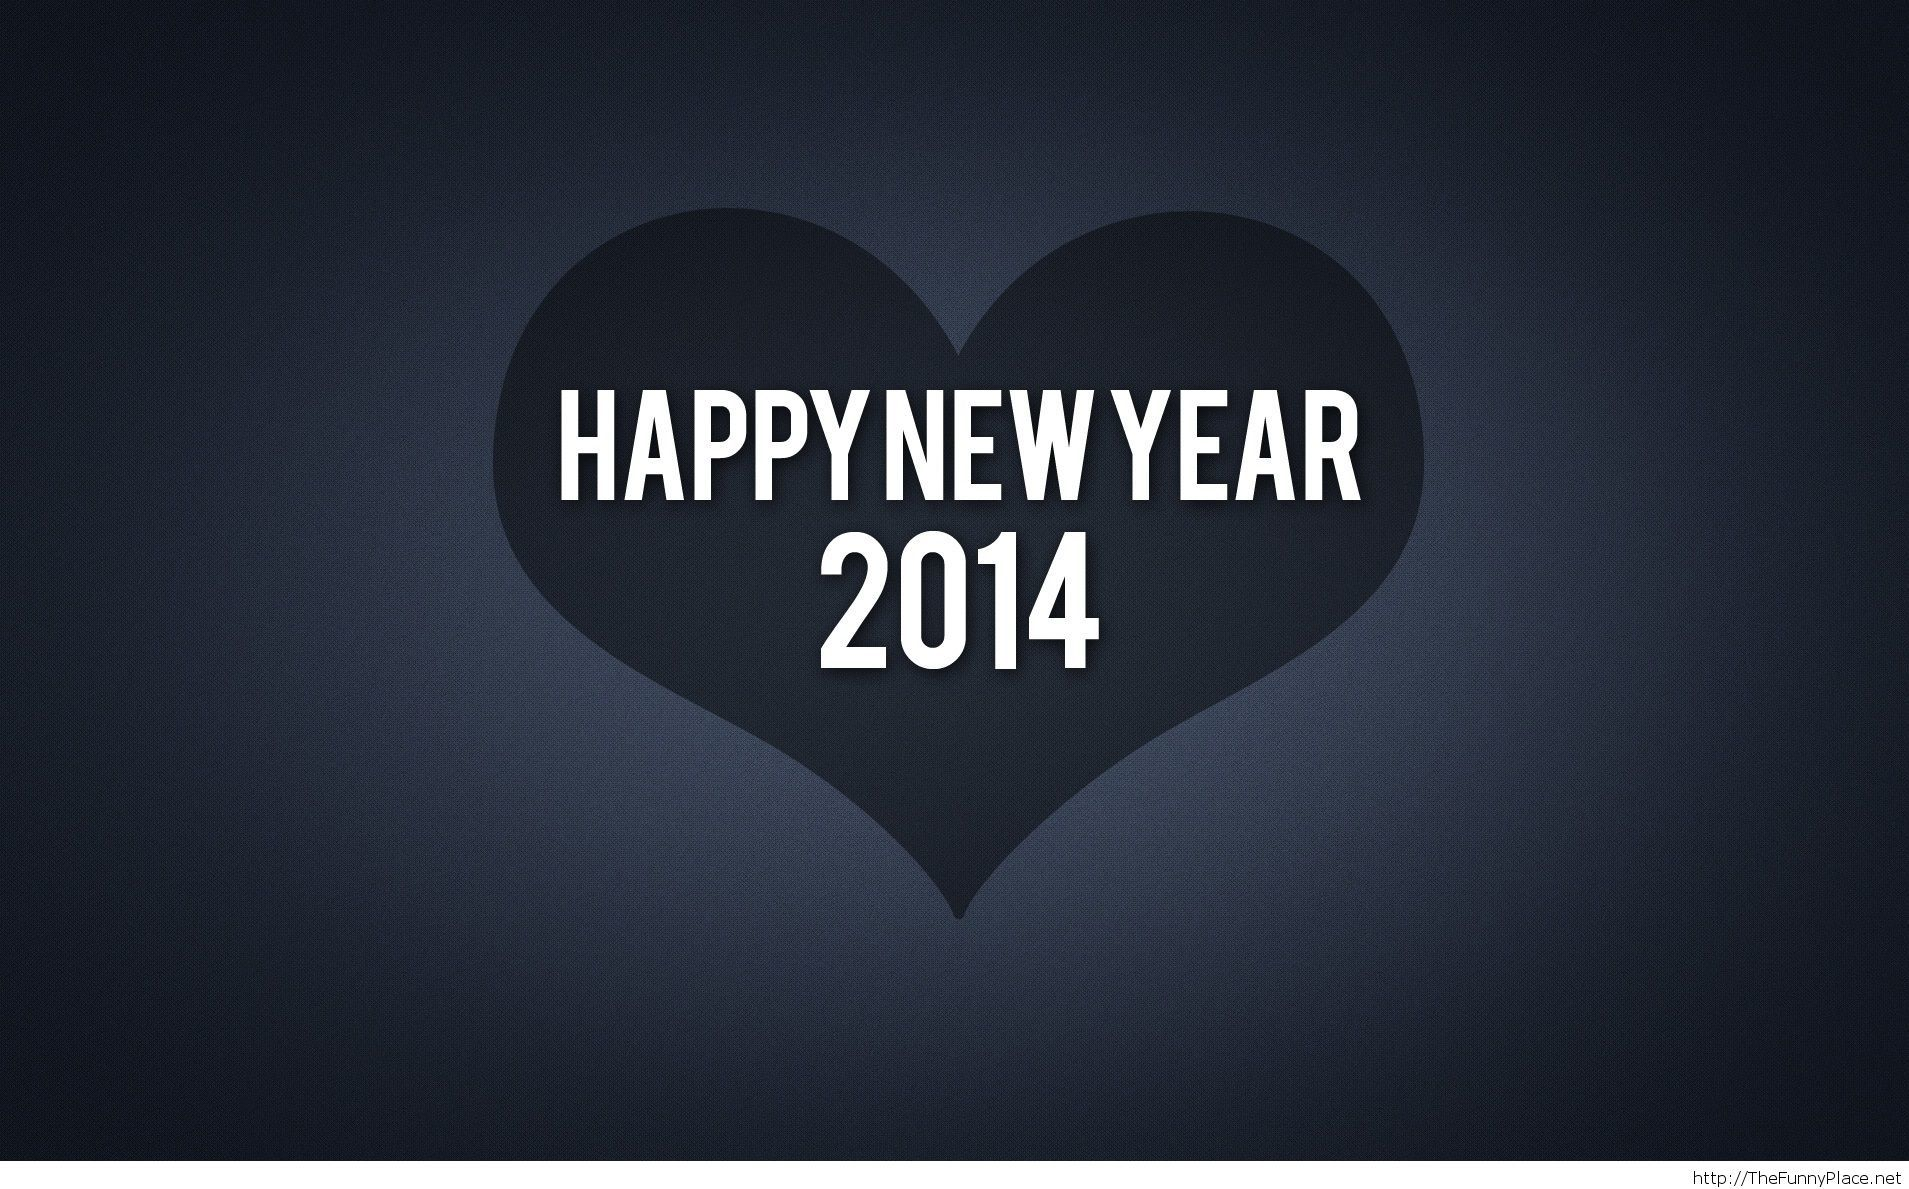 Happy new year 2014 love wallpaper